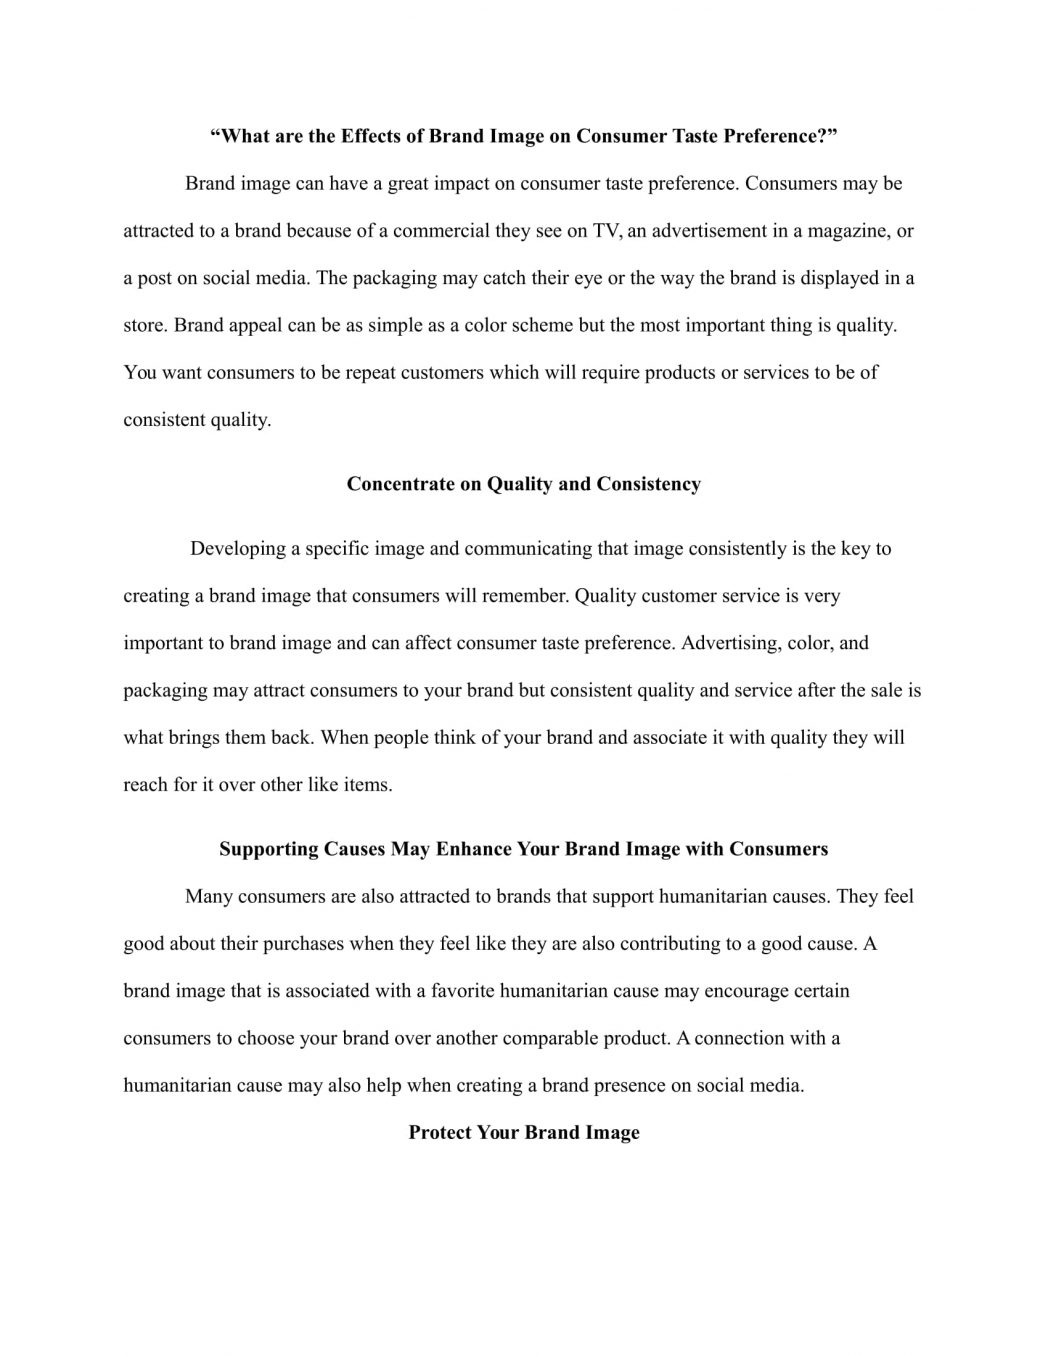 010 College Essay Heading Brand Expositions Engineering Application Expository Sam Margins Sample Personal Format Papers Entrance 1048x1356 Incredible Admissions Example Full